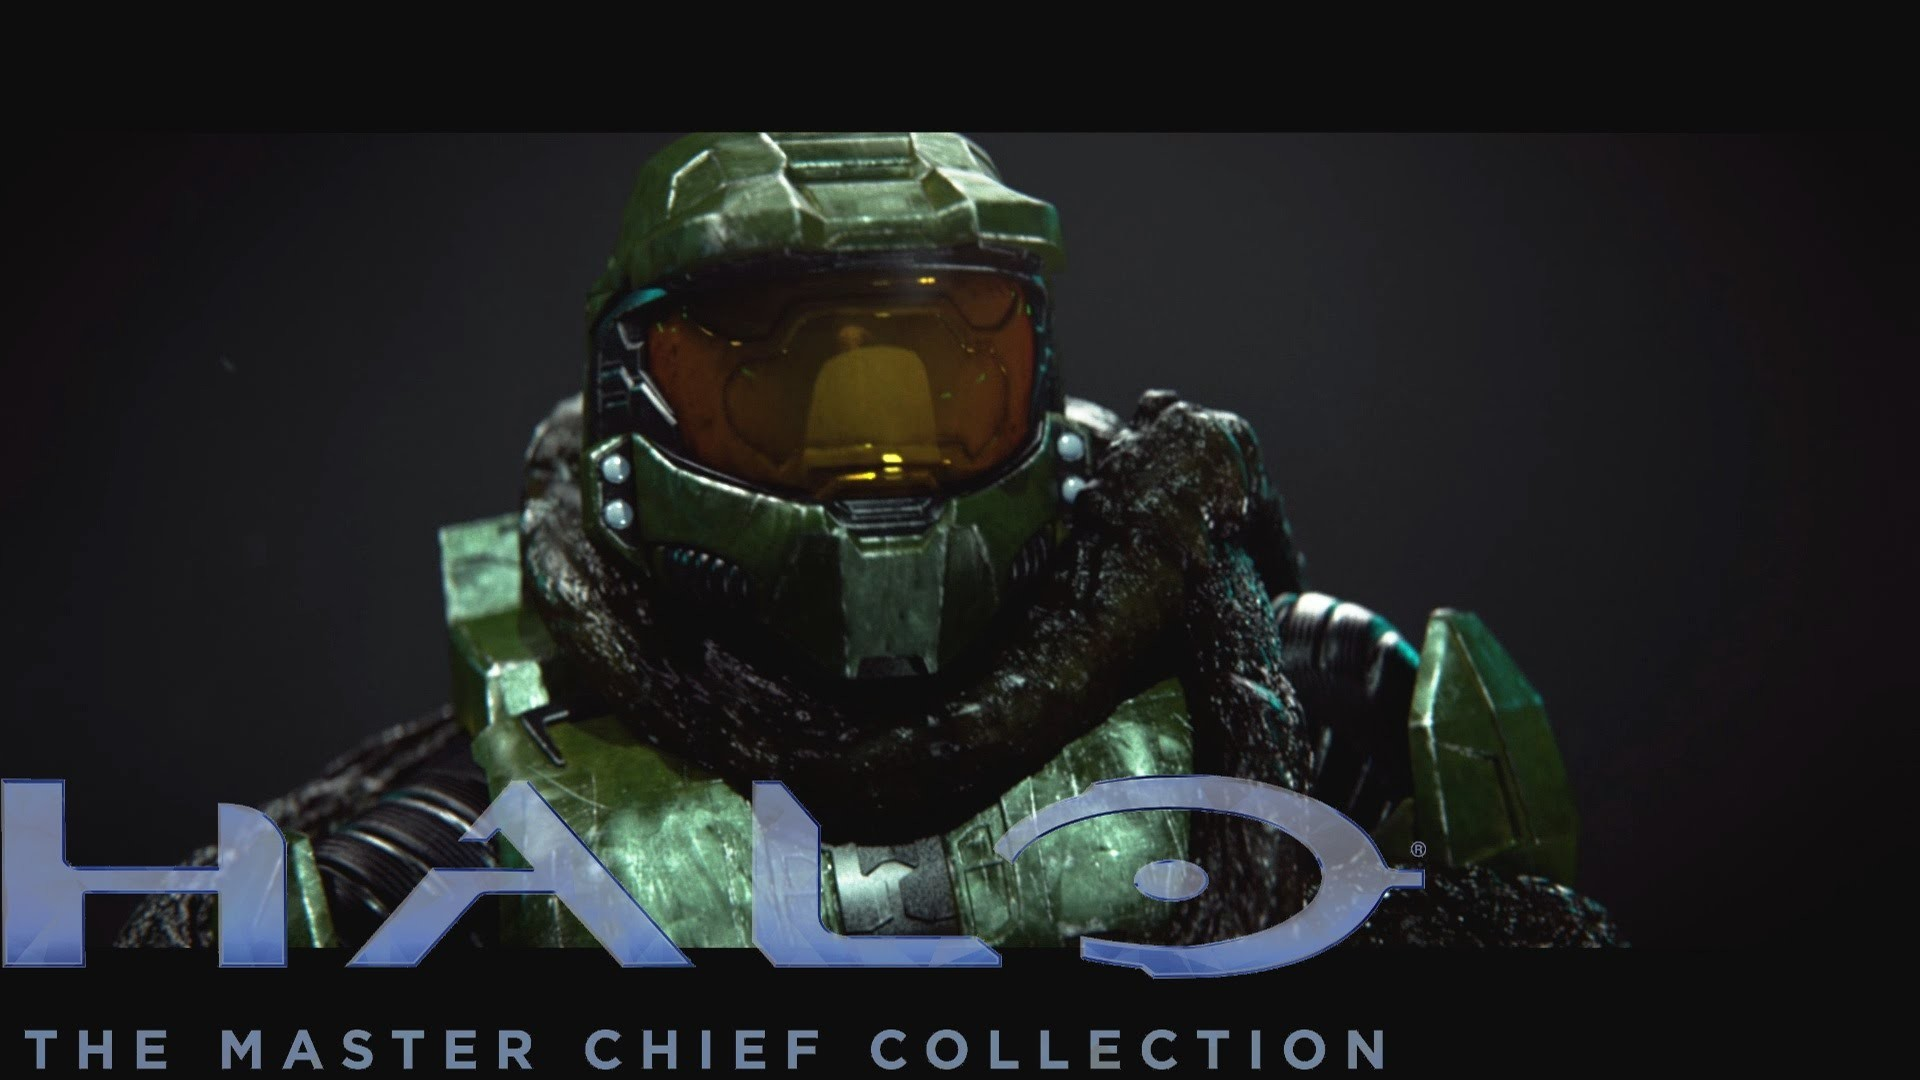 HALO Master Chief Collection GAMEPLAY – HALO 2 Anniversary CAMPAIGN  Gameplay 1080p 60fps! – YouTube